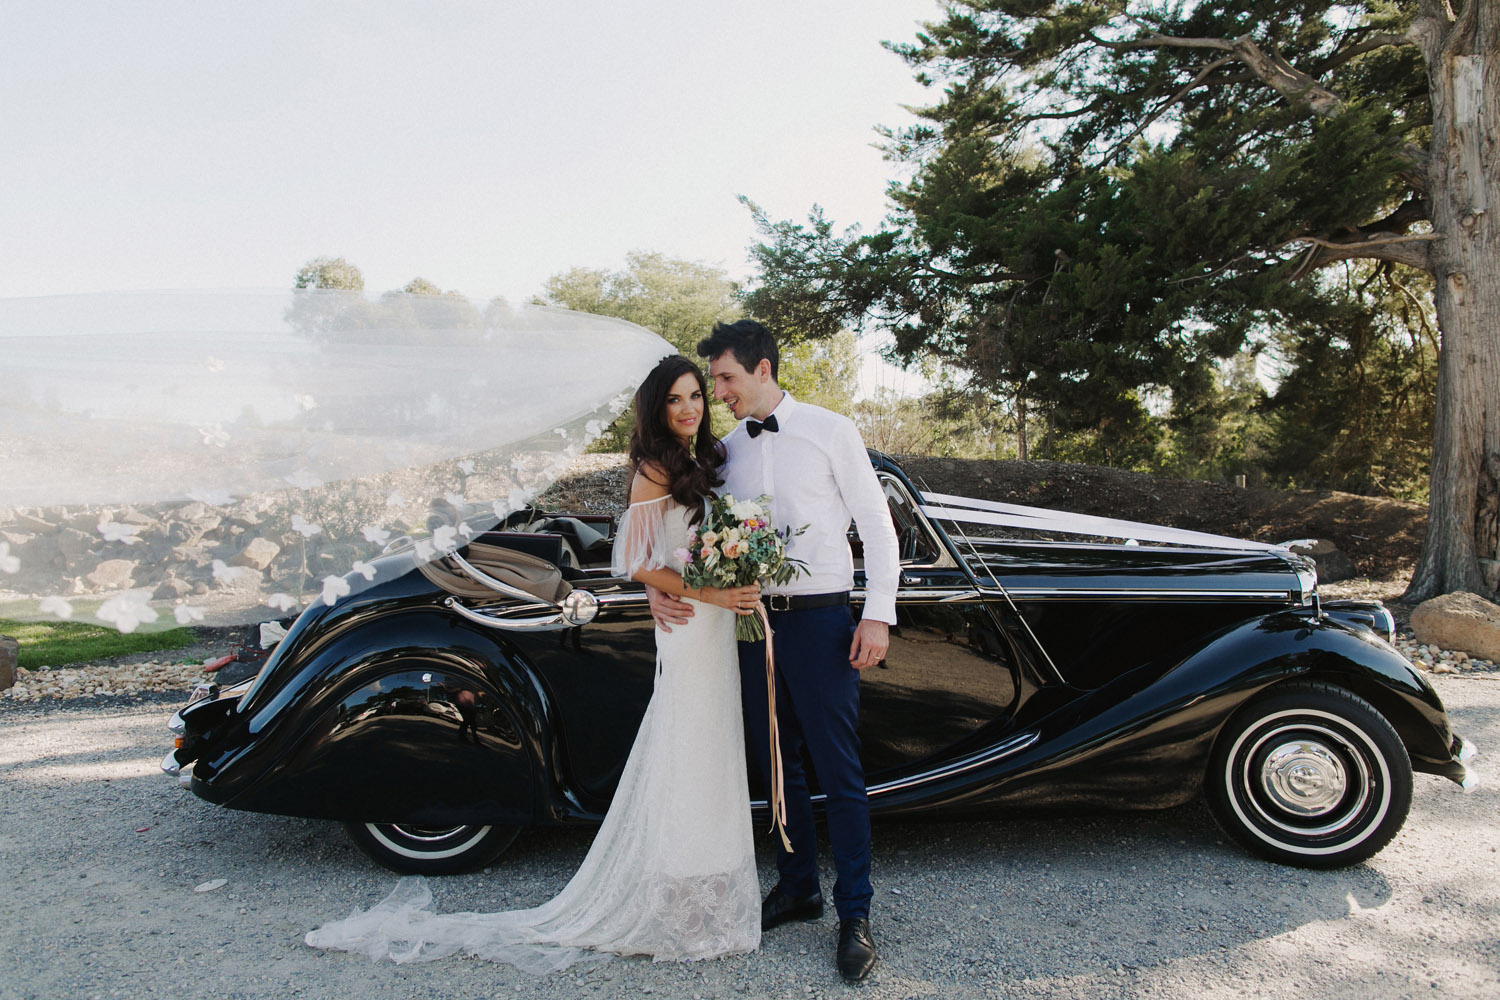 How To Choose The Best Car Rental Service For Your Wedding Day?